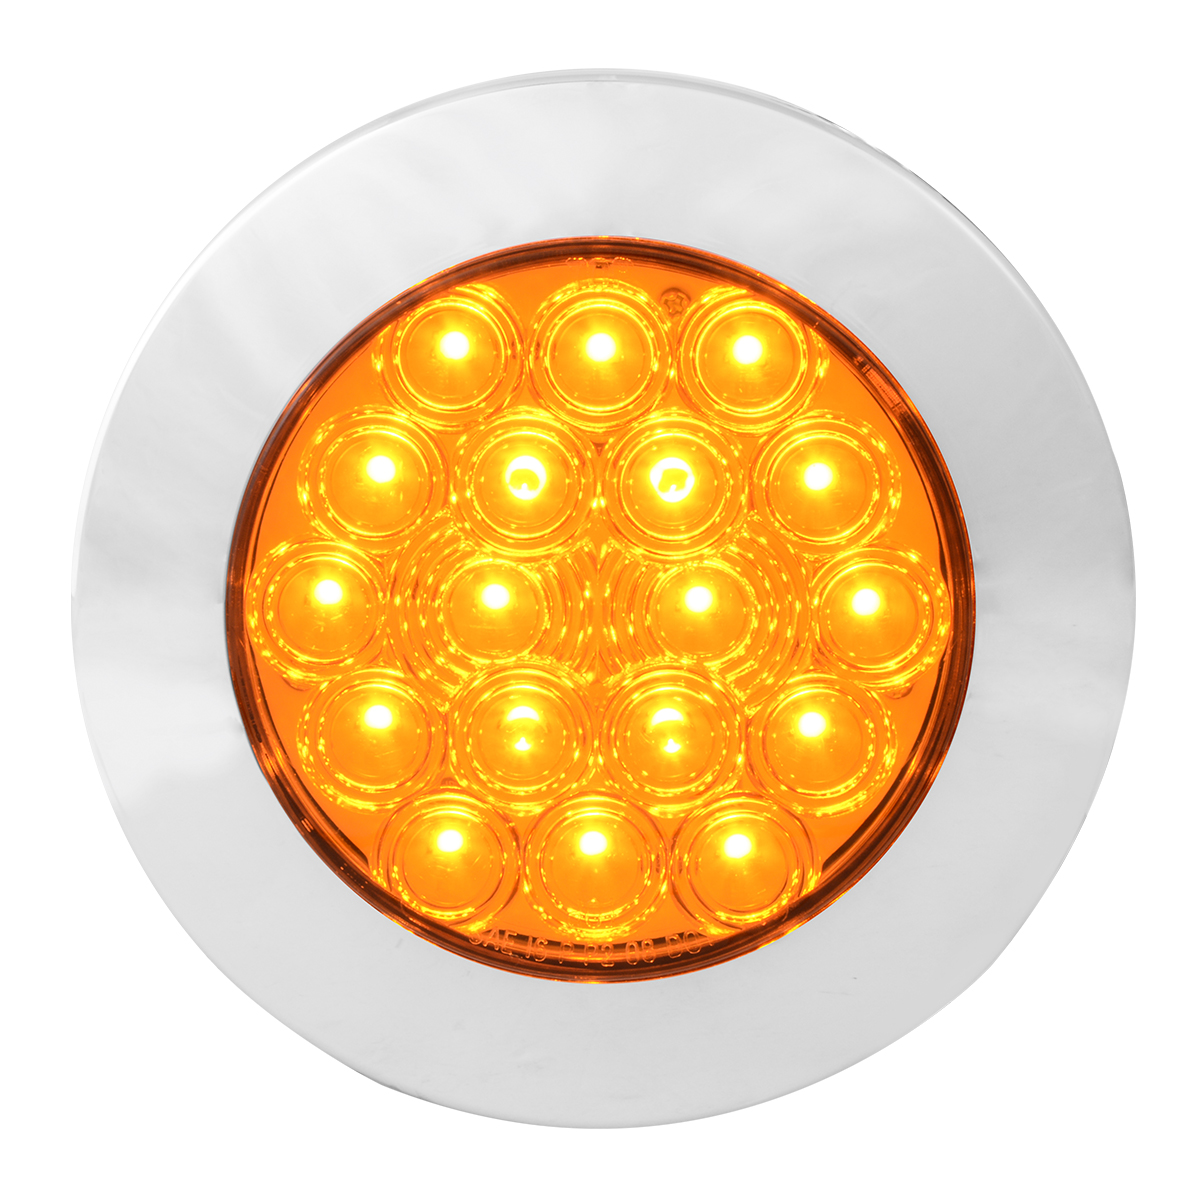 "75900 Amber/Amber 4"" Fleet Flange Mount LED Light with Chrome Twist & Lock Bezel"